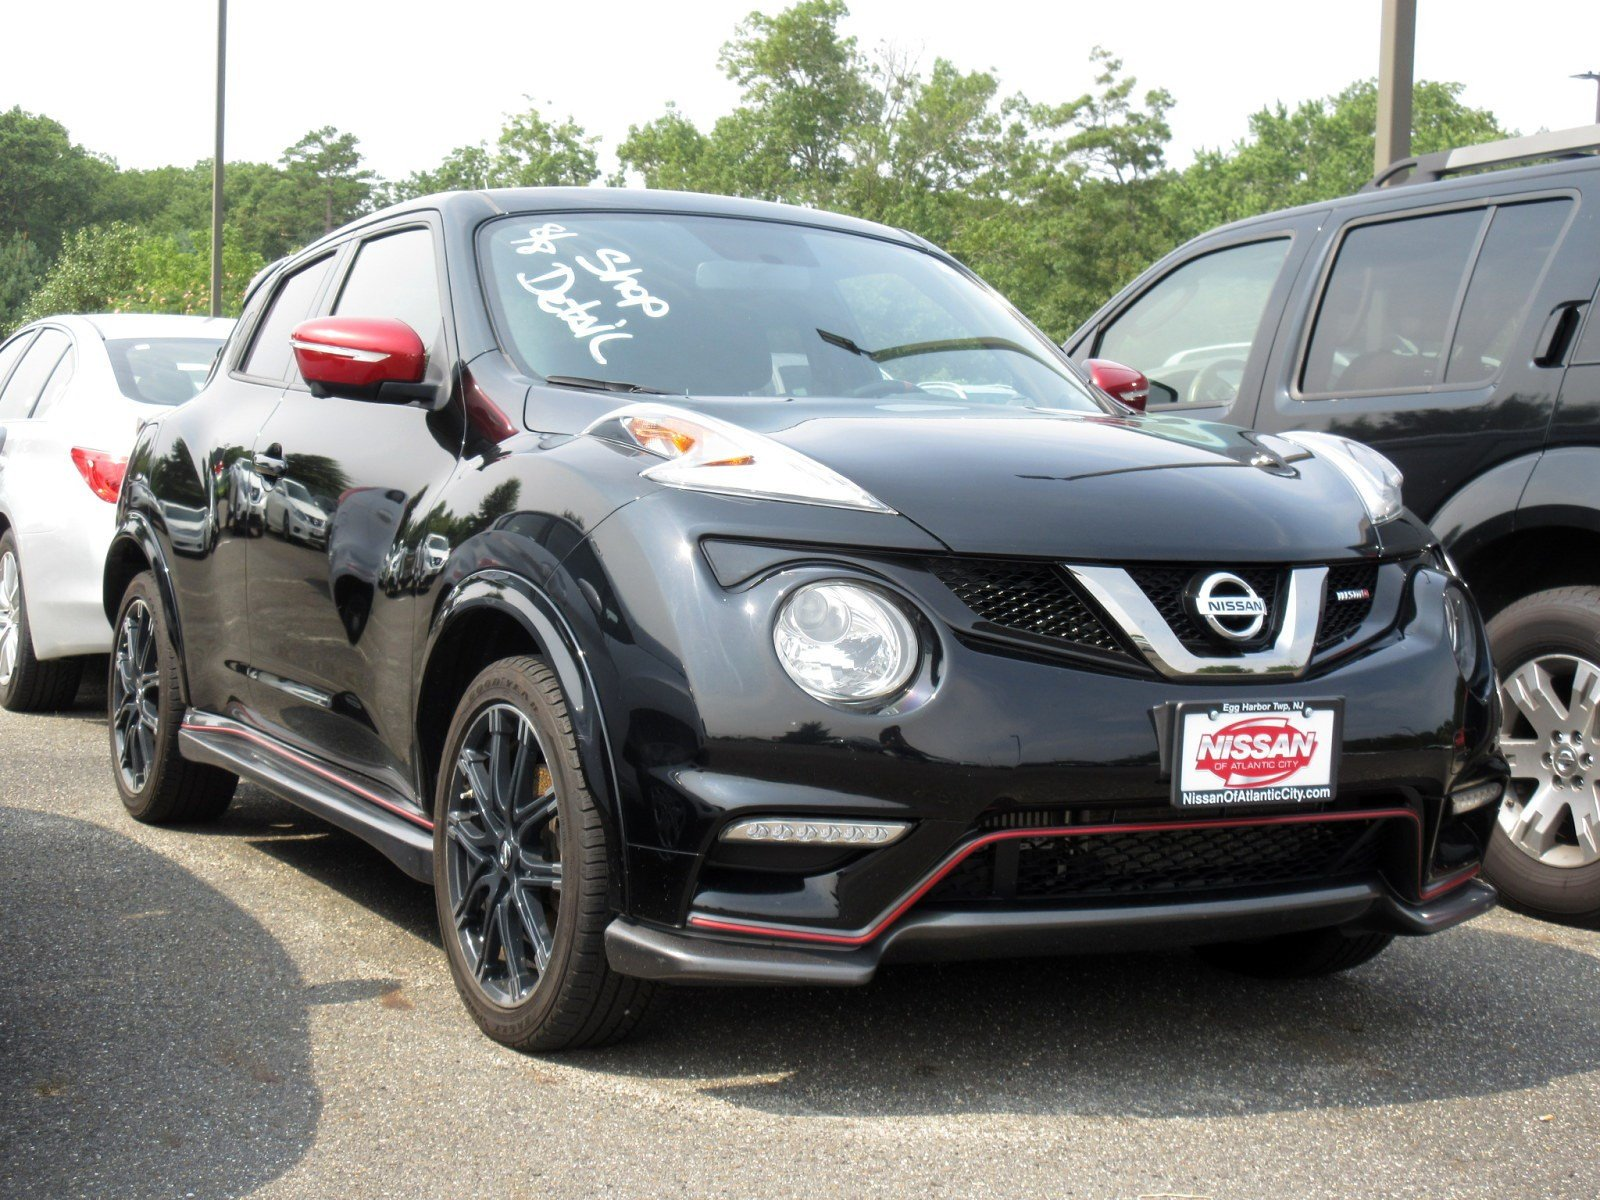 2013 Nissan Juke Sl Owners Manual Recomended Car Wiring Diagram Drive 2015